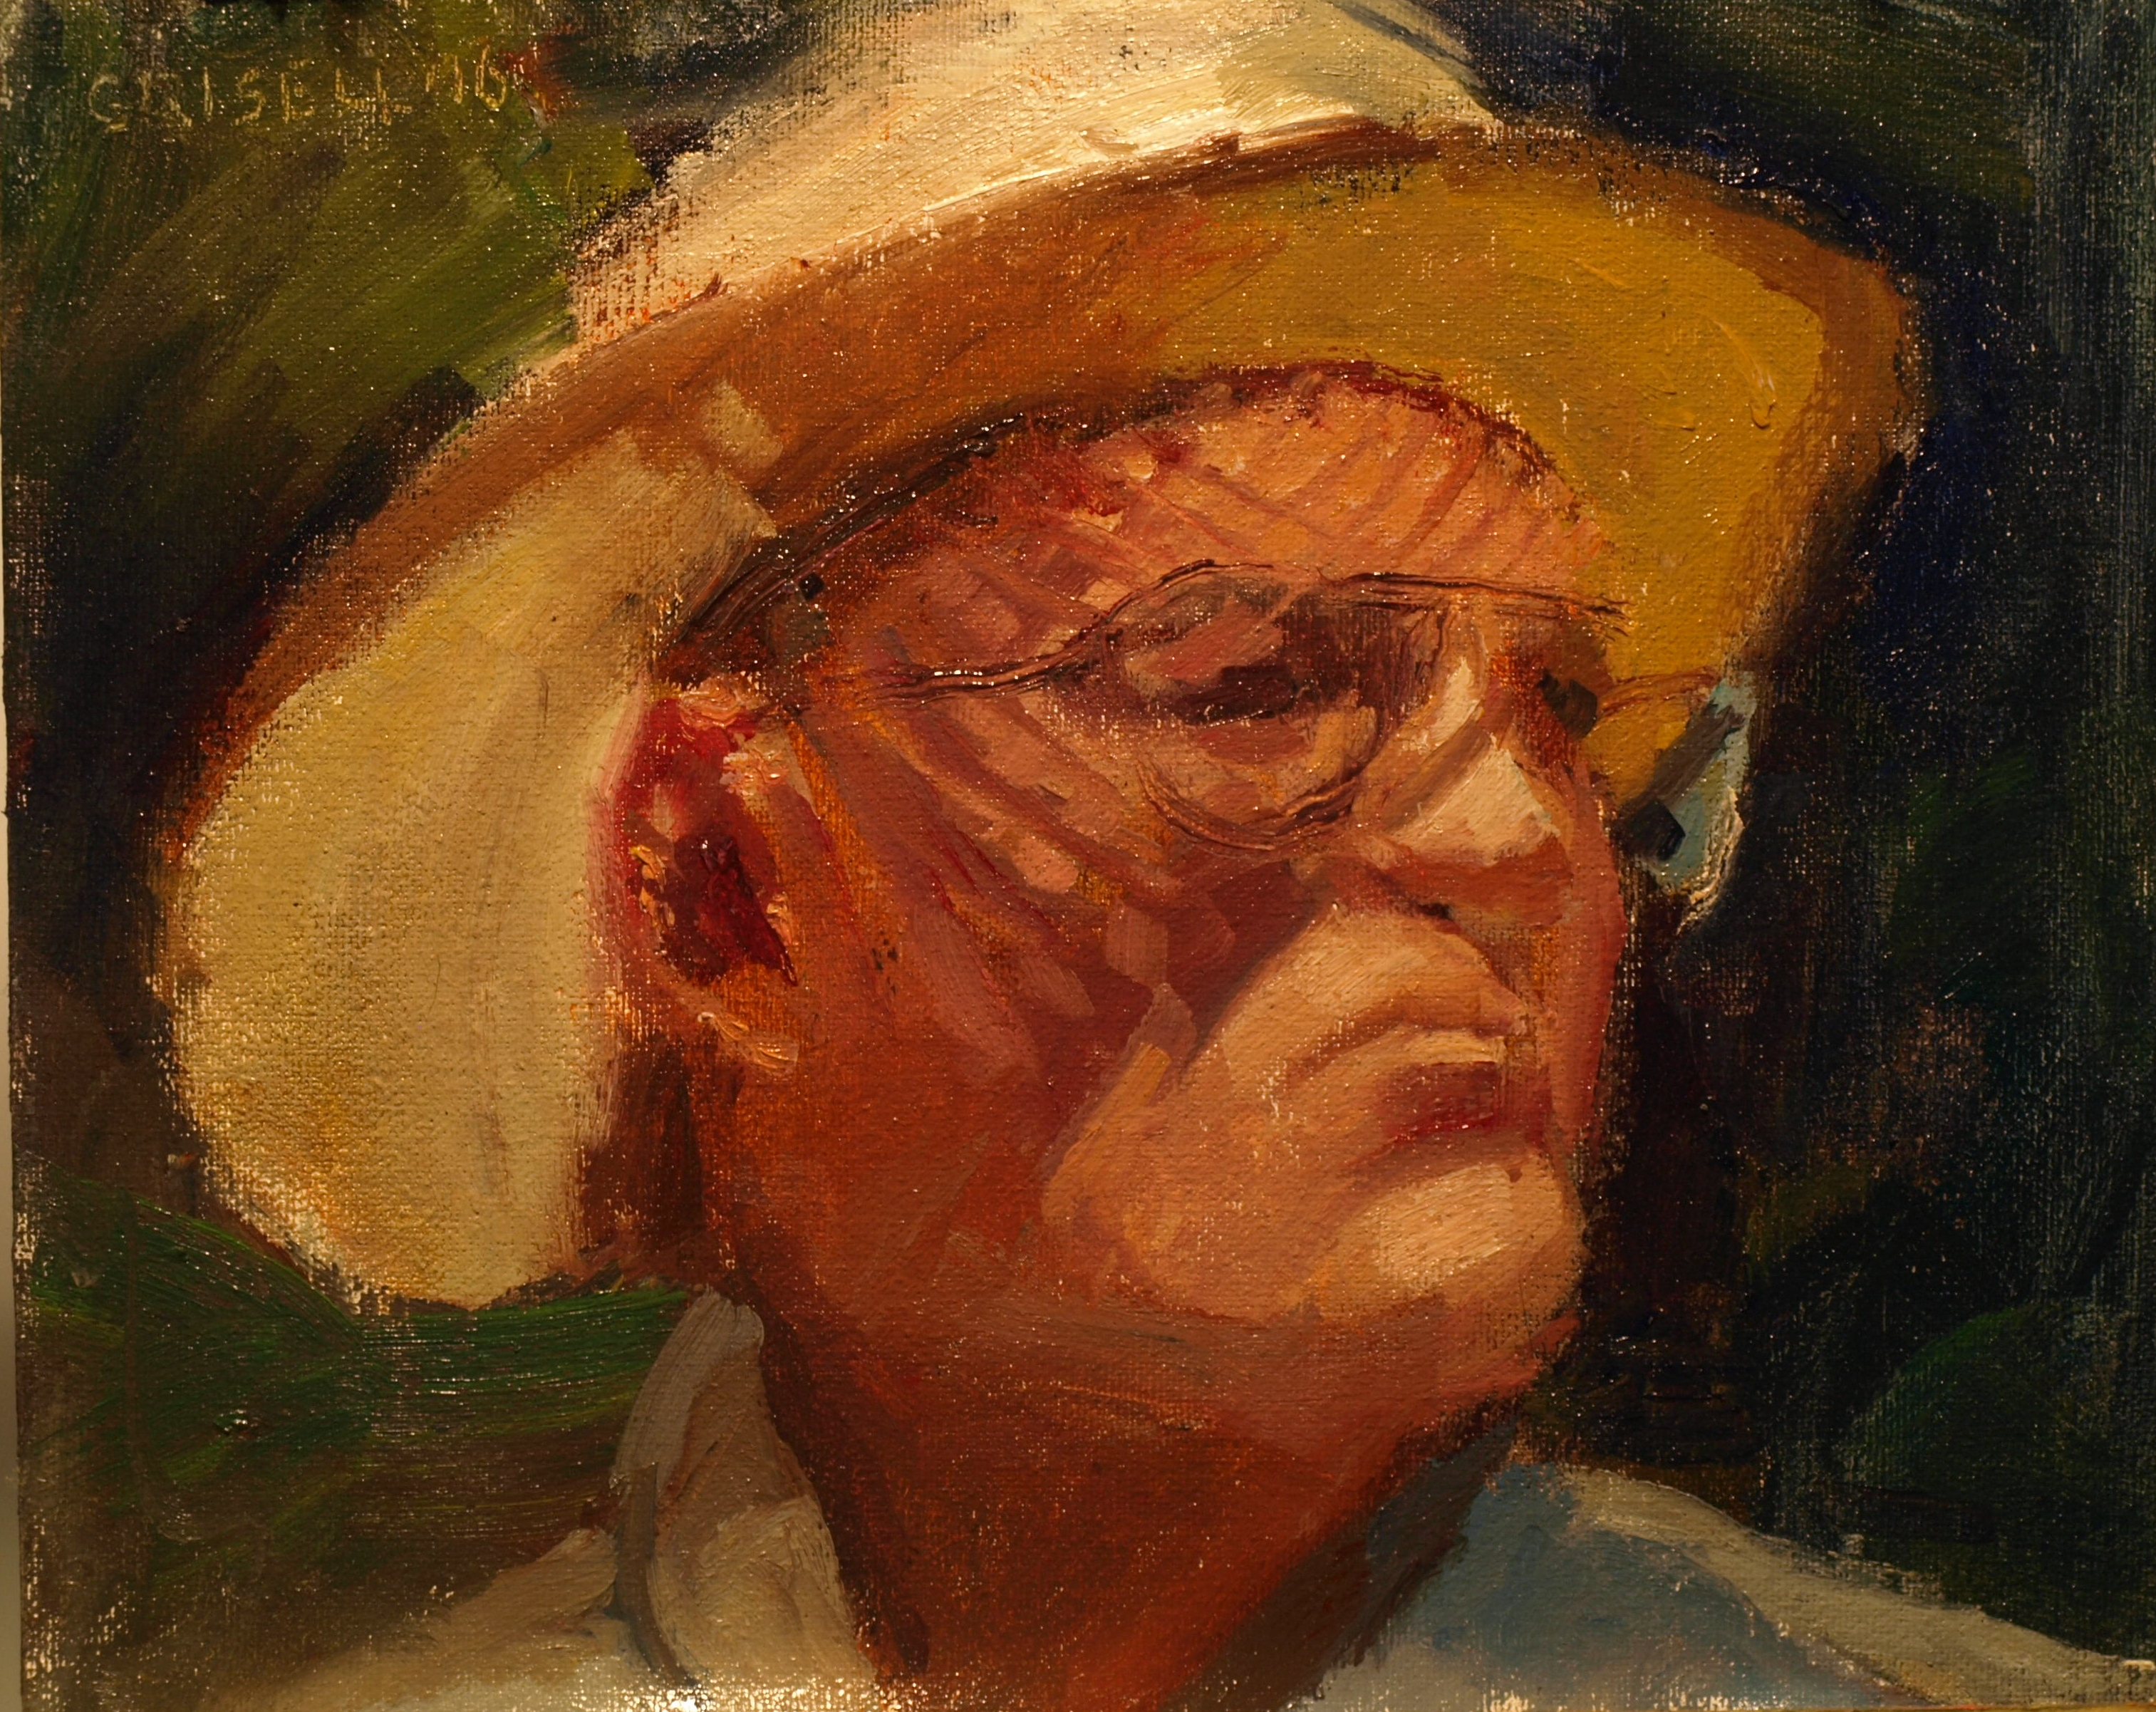 Bill's Hat, Oil on Canvas on Panel, 8 x 10 Inches, by Susan Grisell, $200